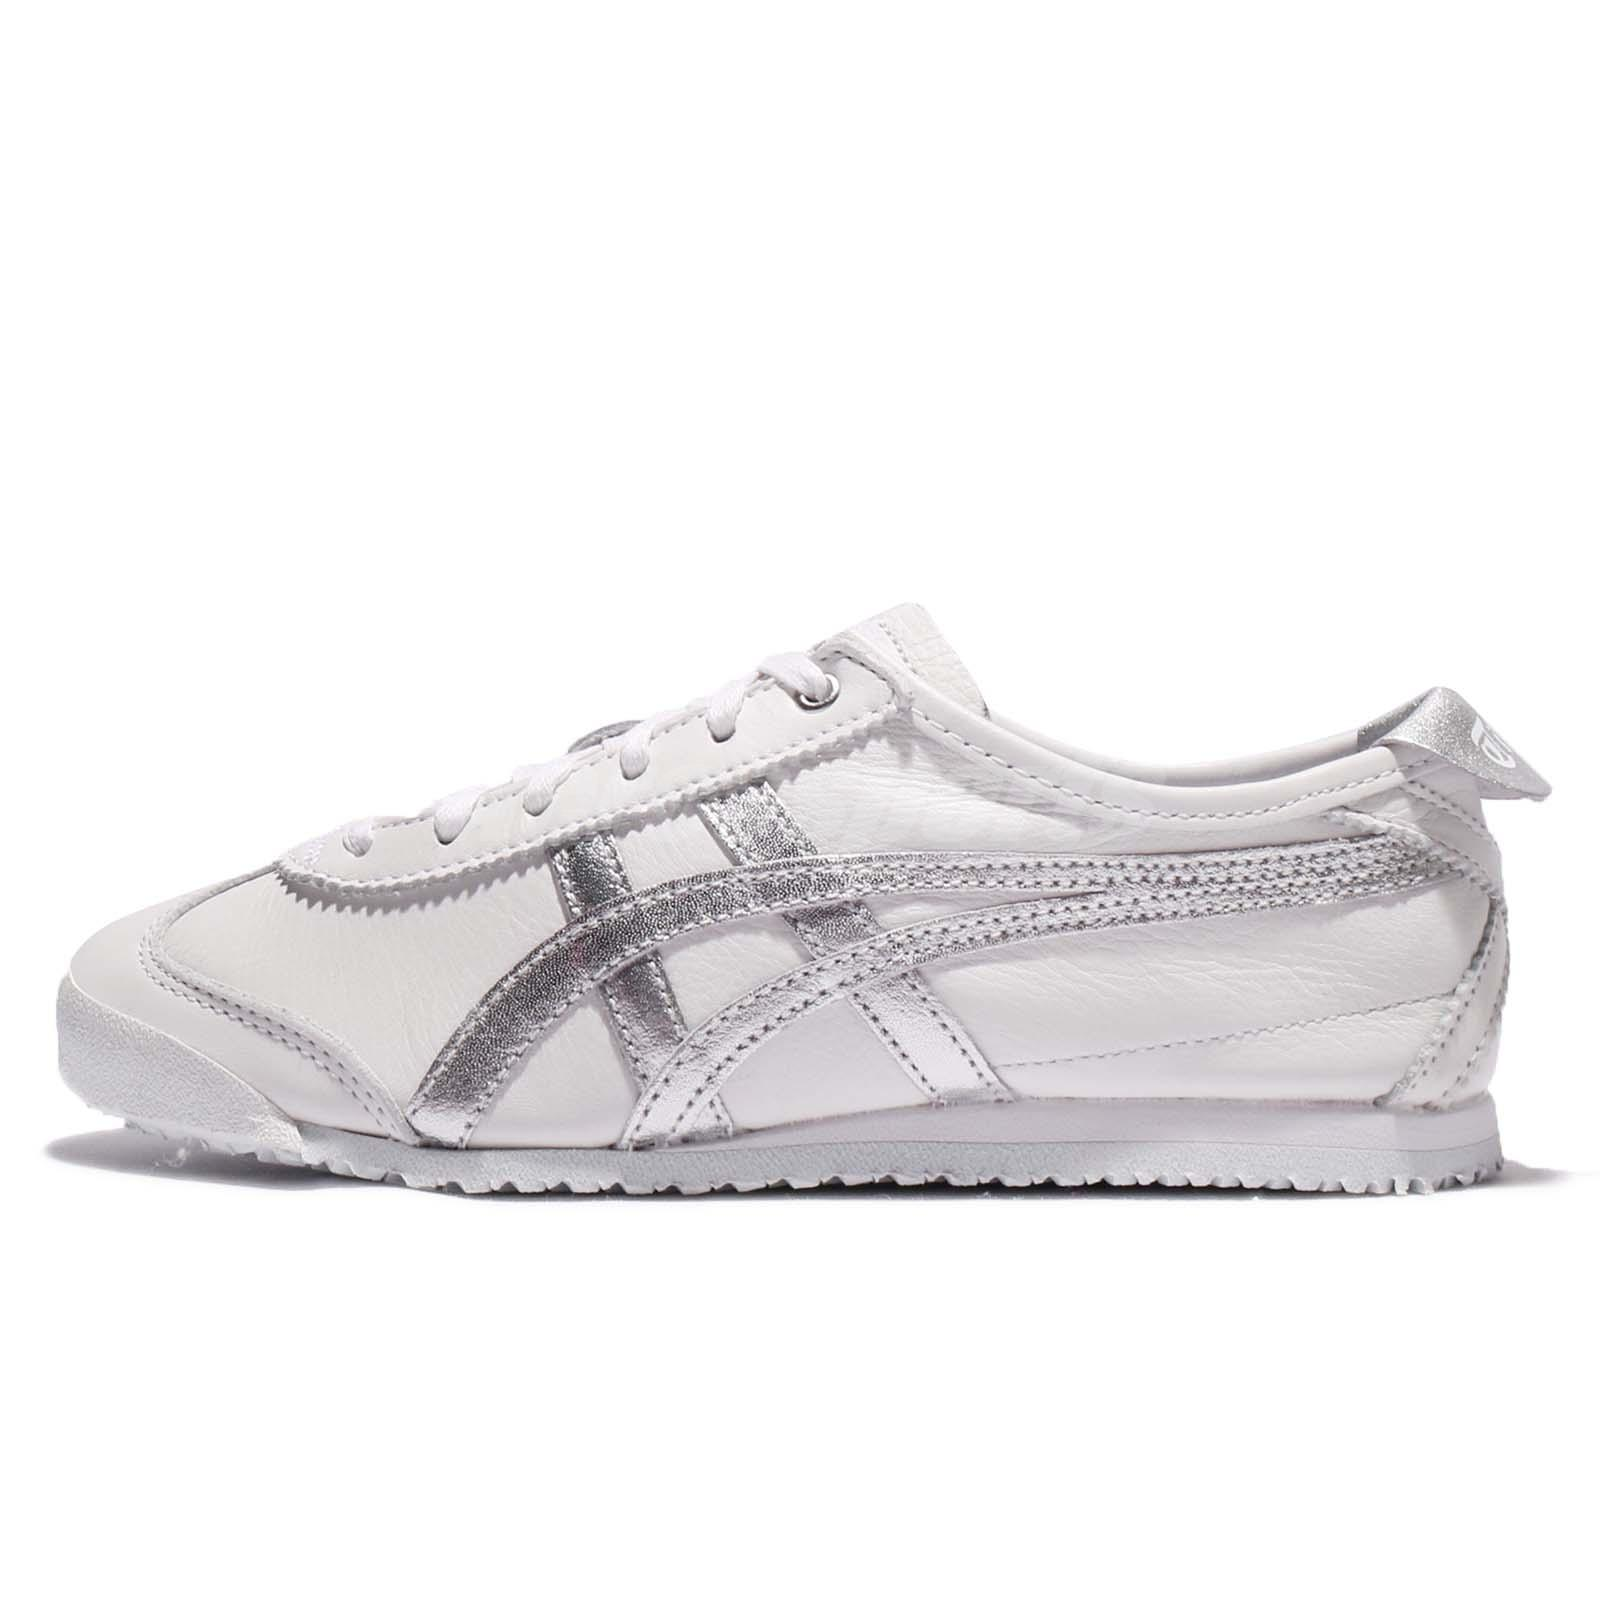 half off 7010e 93b18 Details about Asics Onitsuka Tiger Mexico 66 White Silver Leather Men Shoe  Sneakers D508K-0193